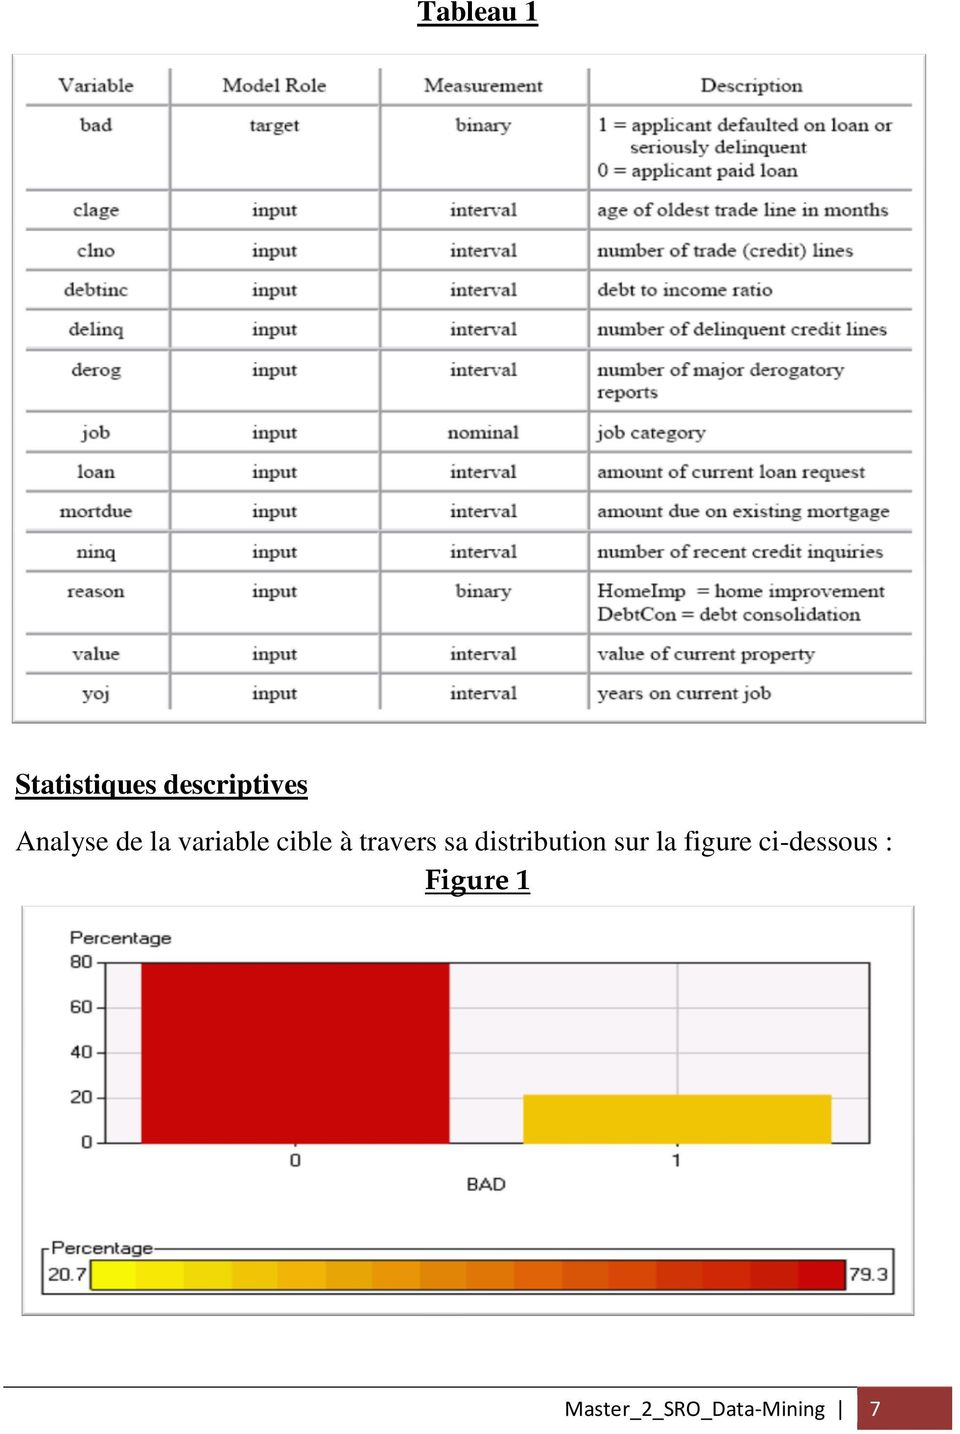 sa distribution sur la figure